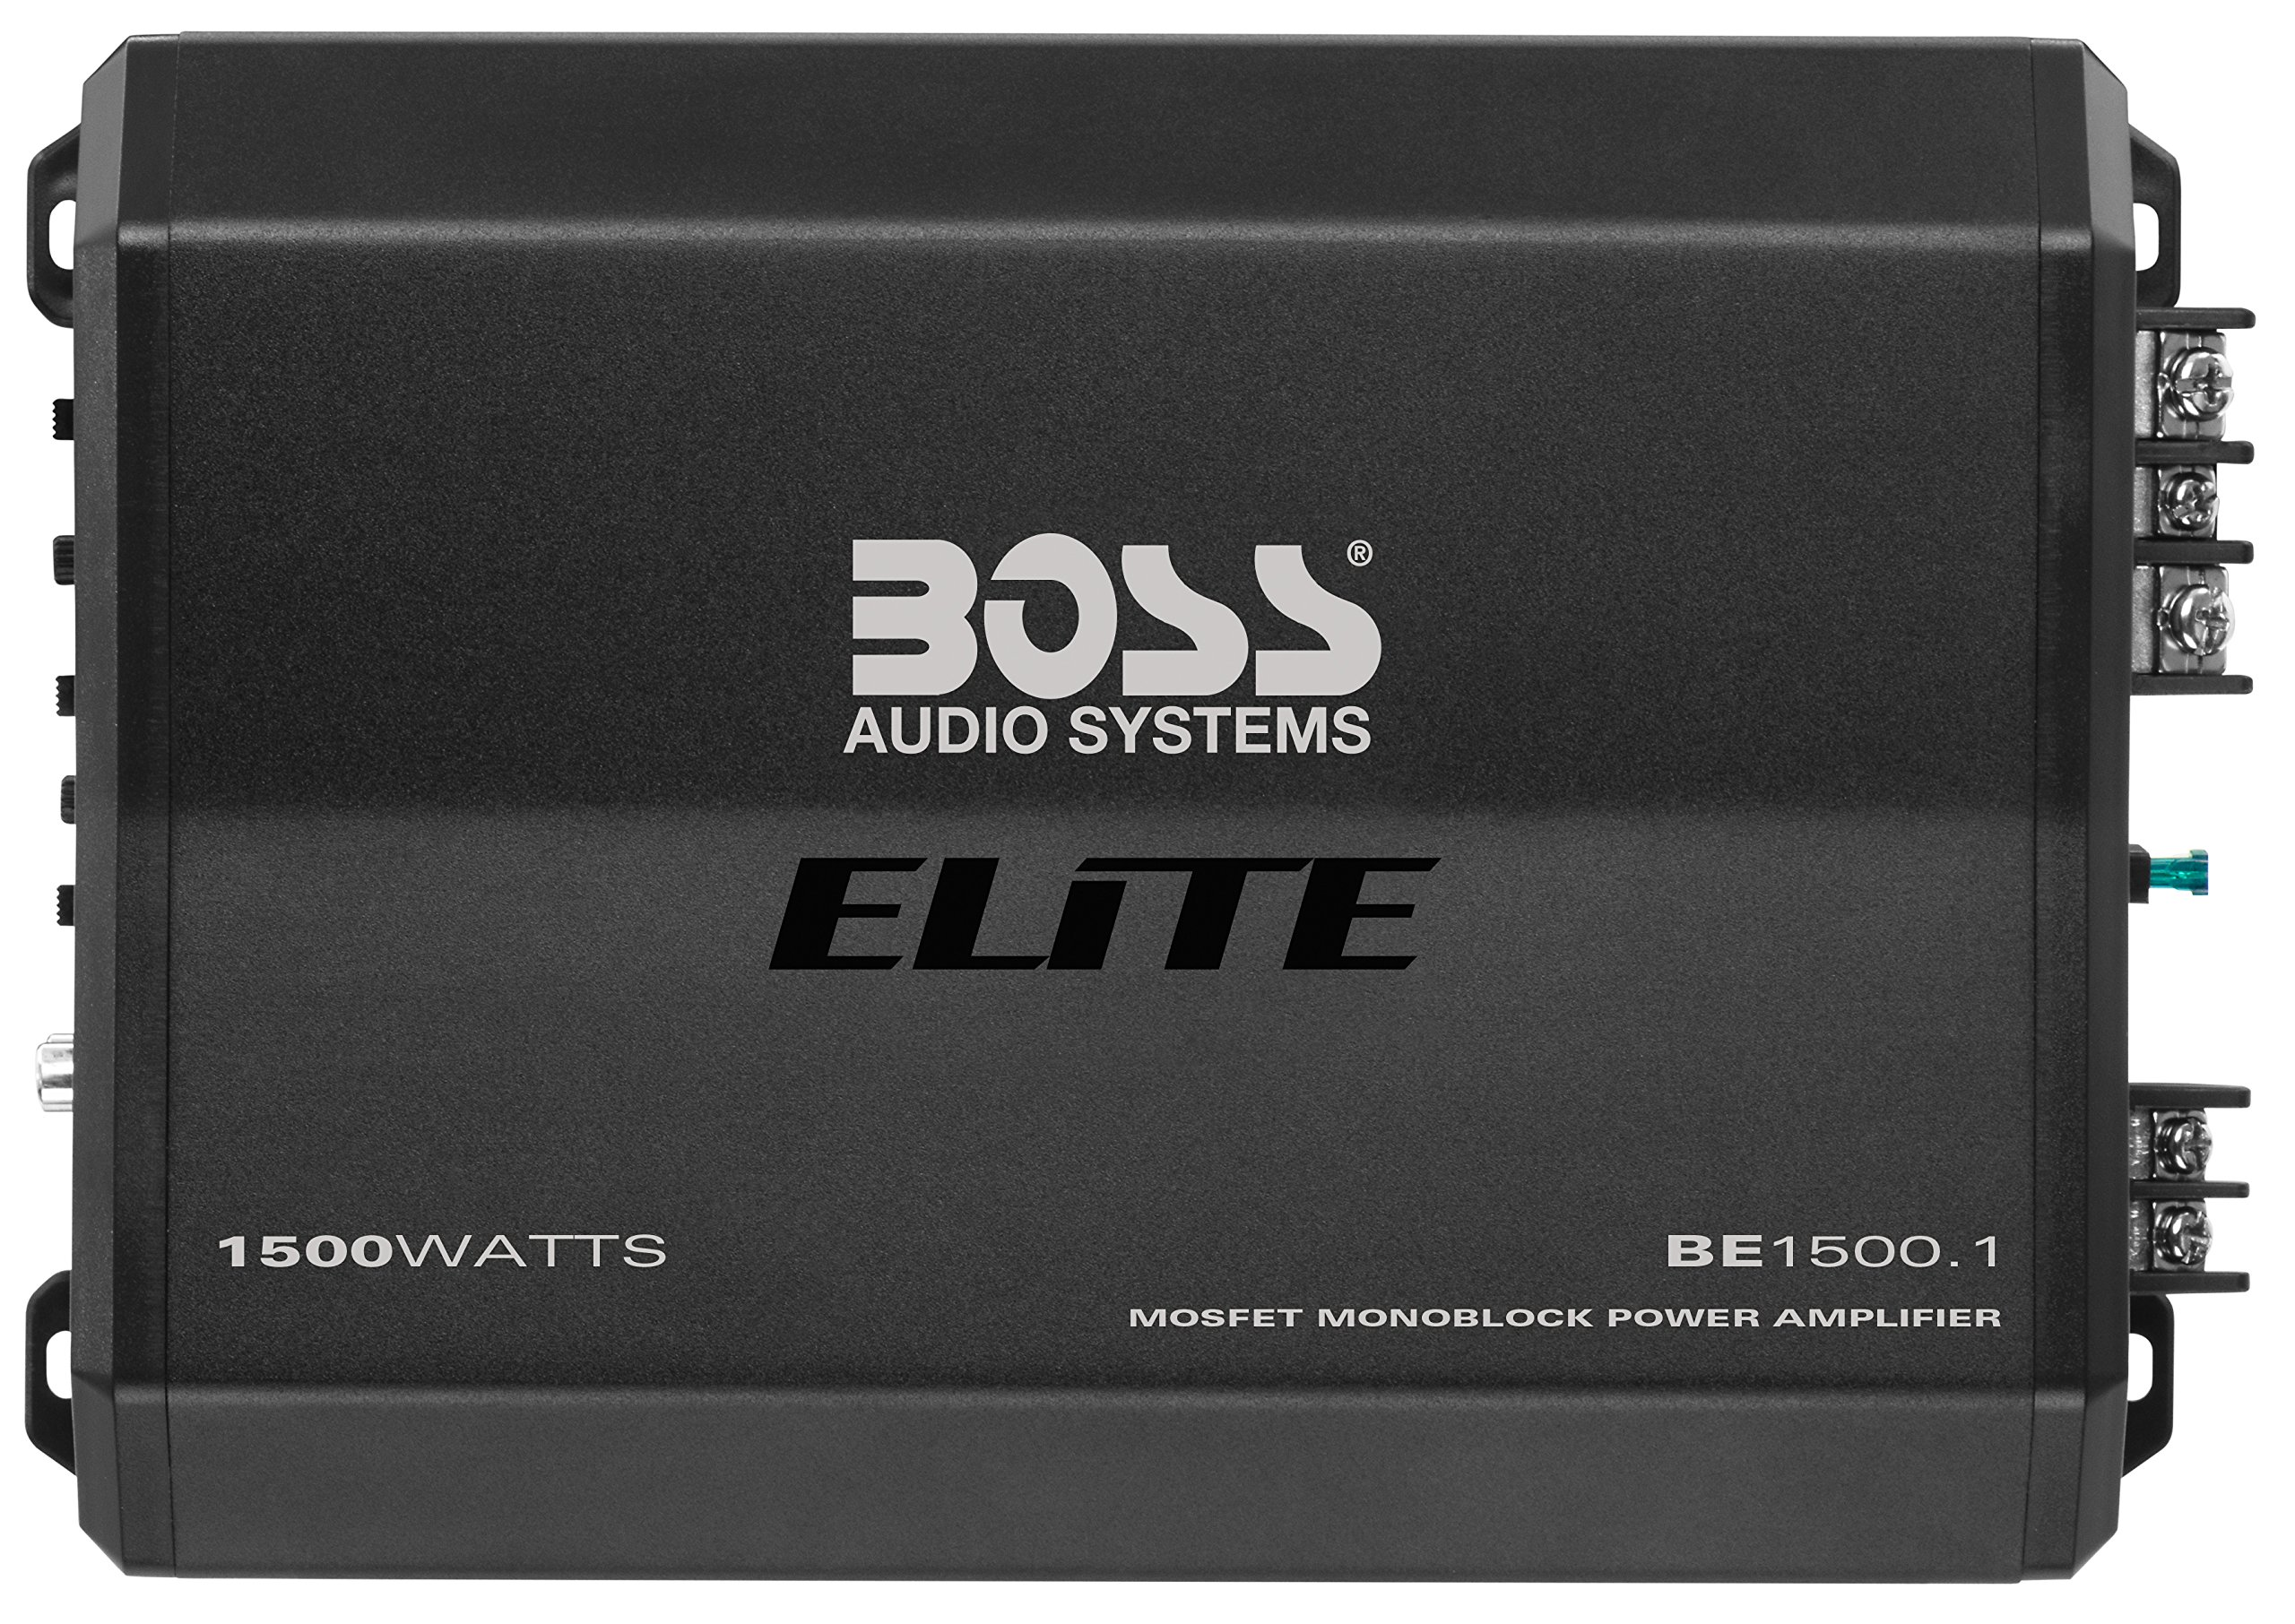 BOSS Audio Elite BE1500.1 1500 Watt, Class A/B, Monoblock Amplifier, Remote Subwoofer Control